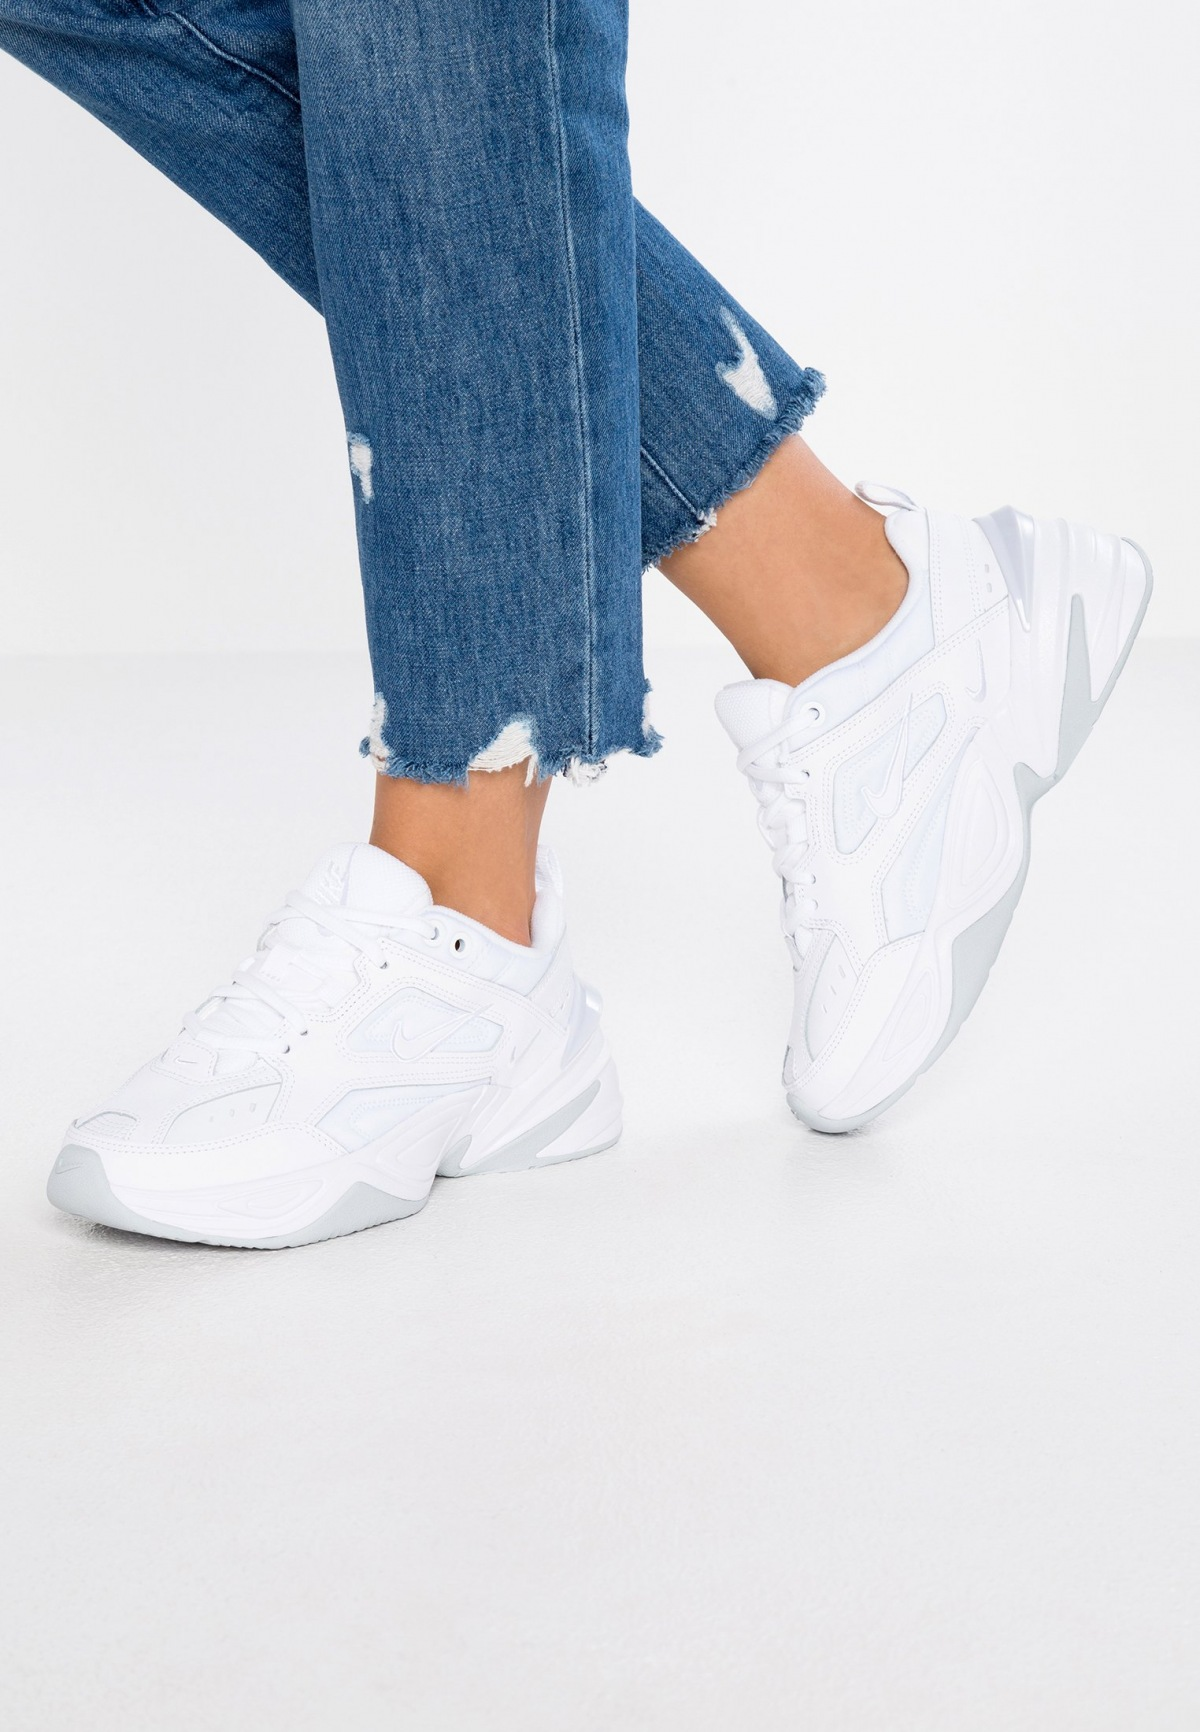 M2K tekno sneakers by Nike, available on zalando.de Kylie Jenner Shoes Exact Product